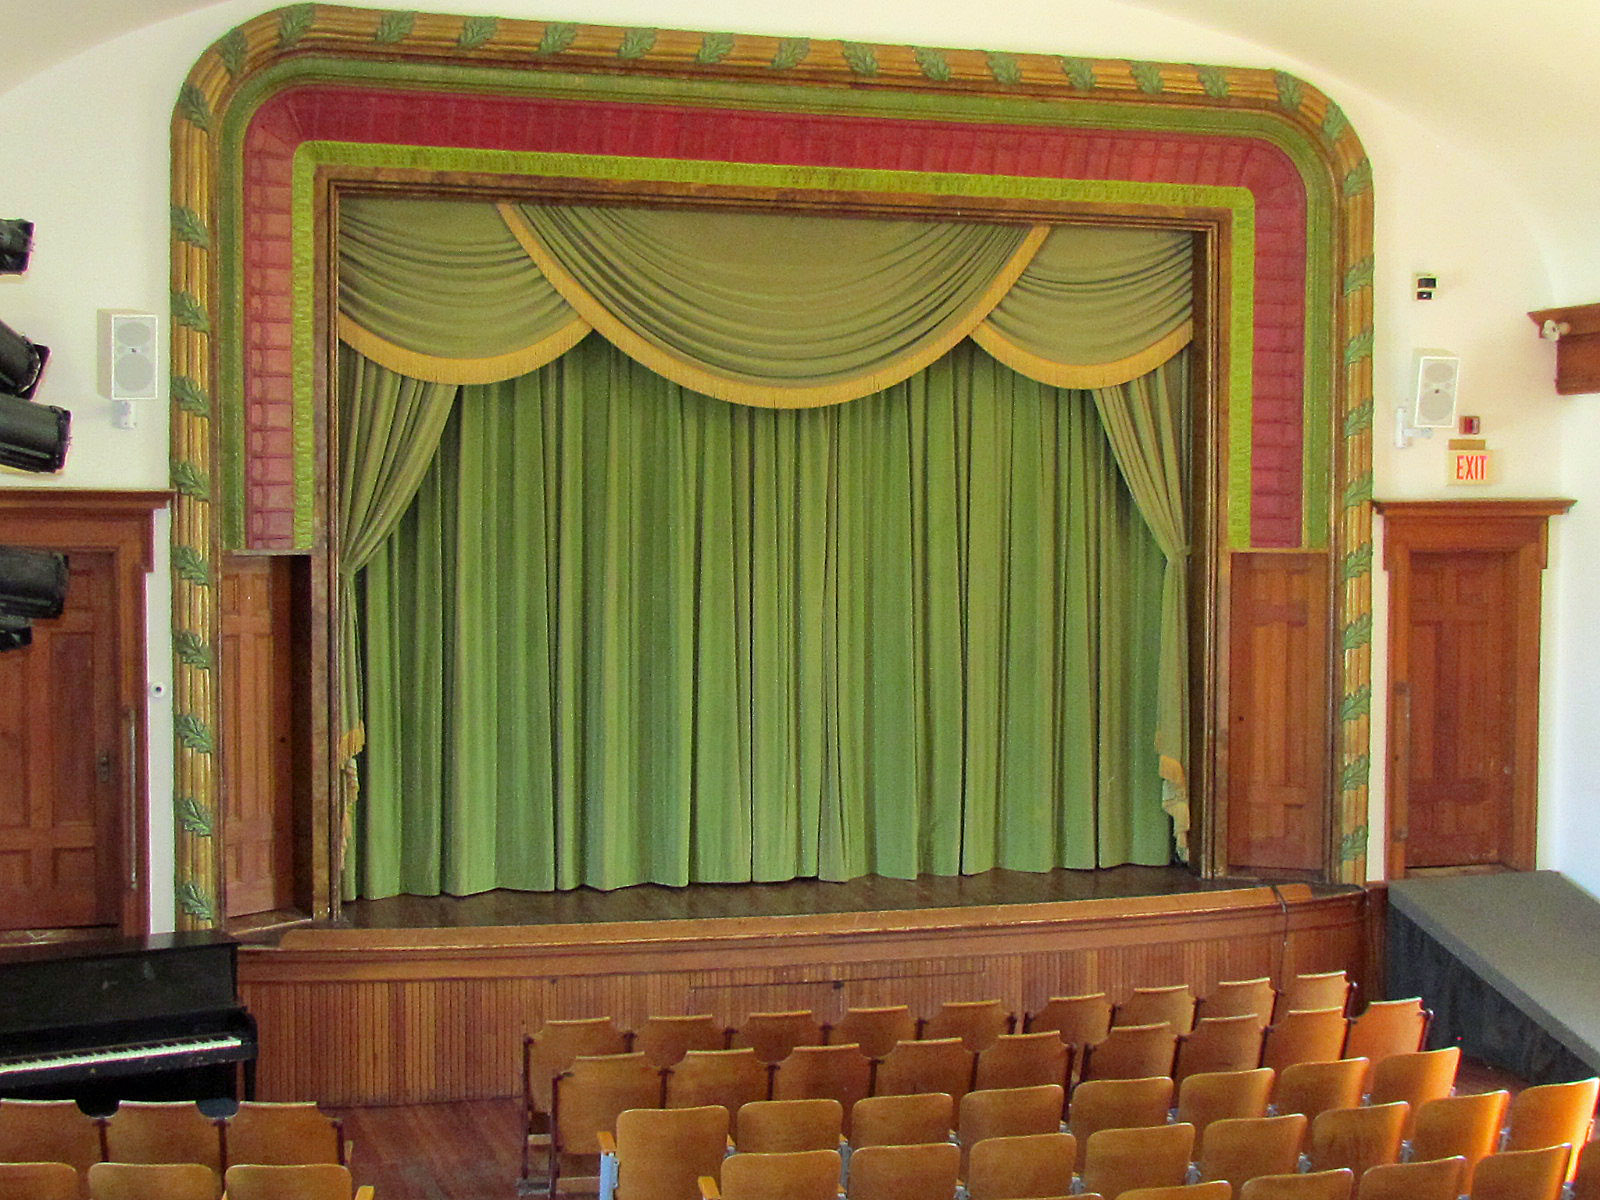 Stage with seats